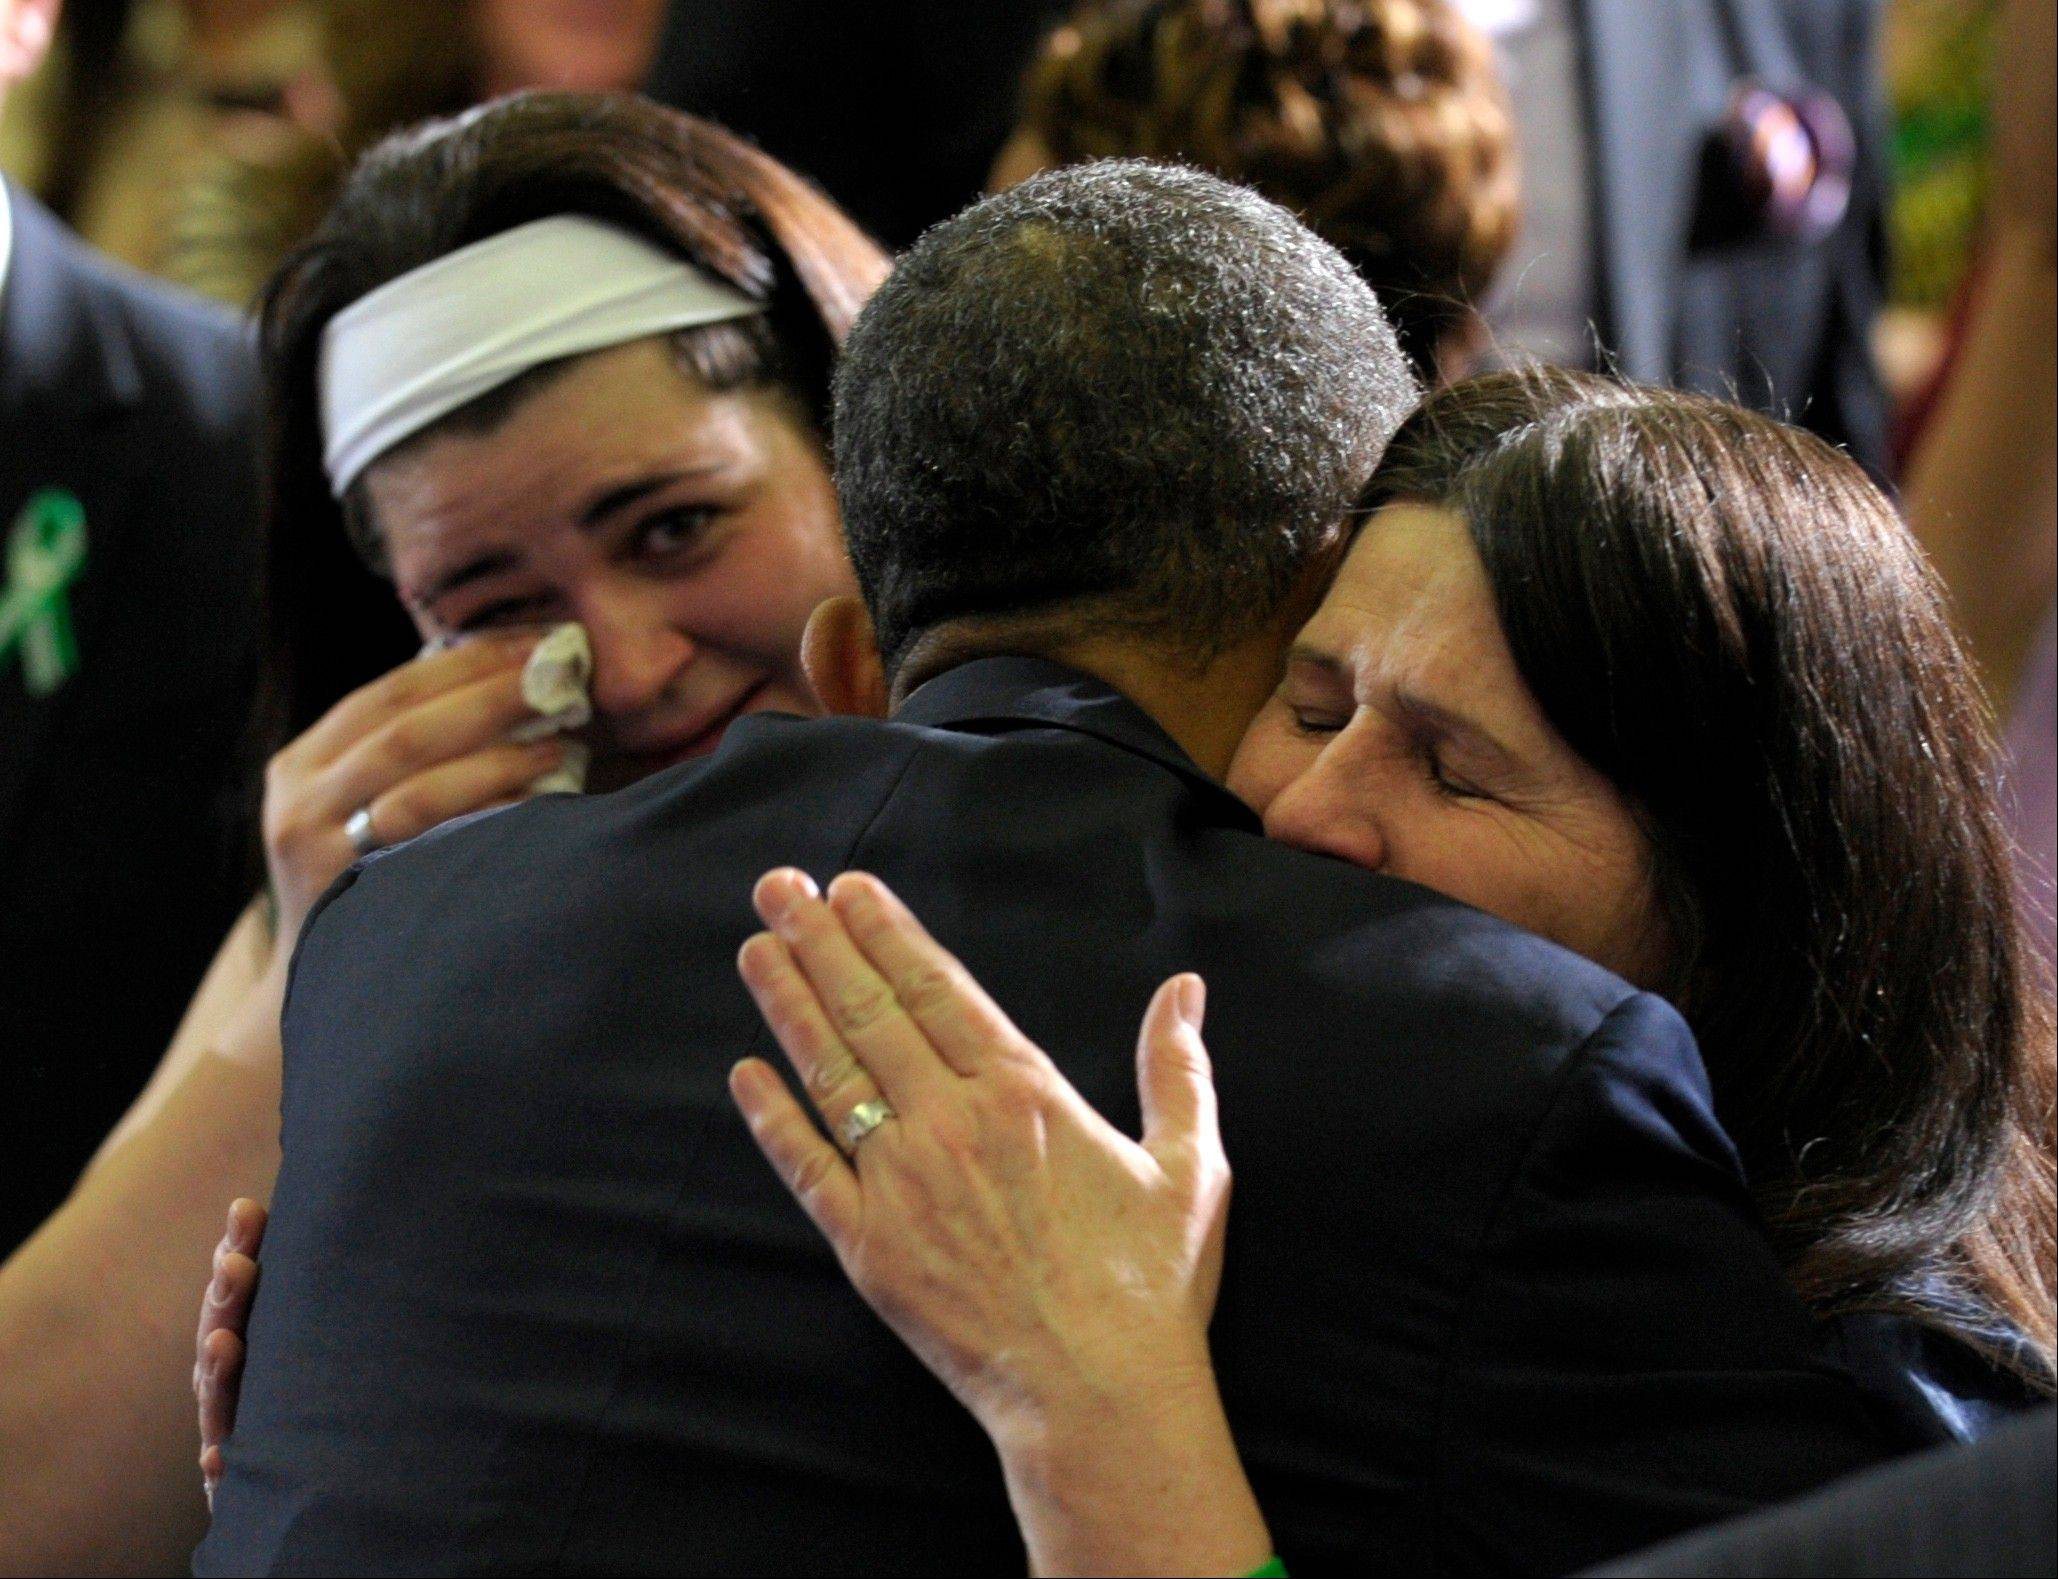 President Barack Obama hugs Newtown family members after speaking at the University of Hartford in Hartford, Conn., Monday. Obama said lawmakers have an obligation to the children killed and other victims of gun violence to act on his proposals.